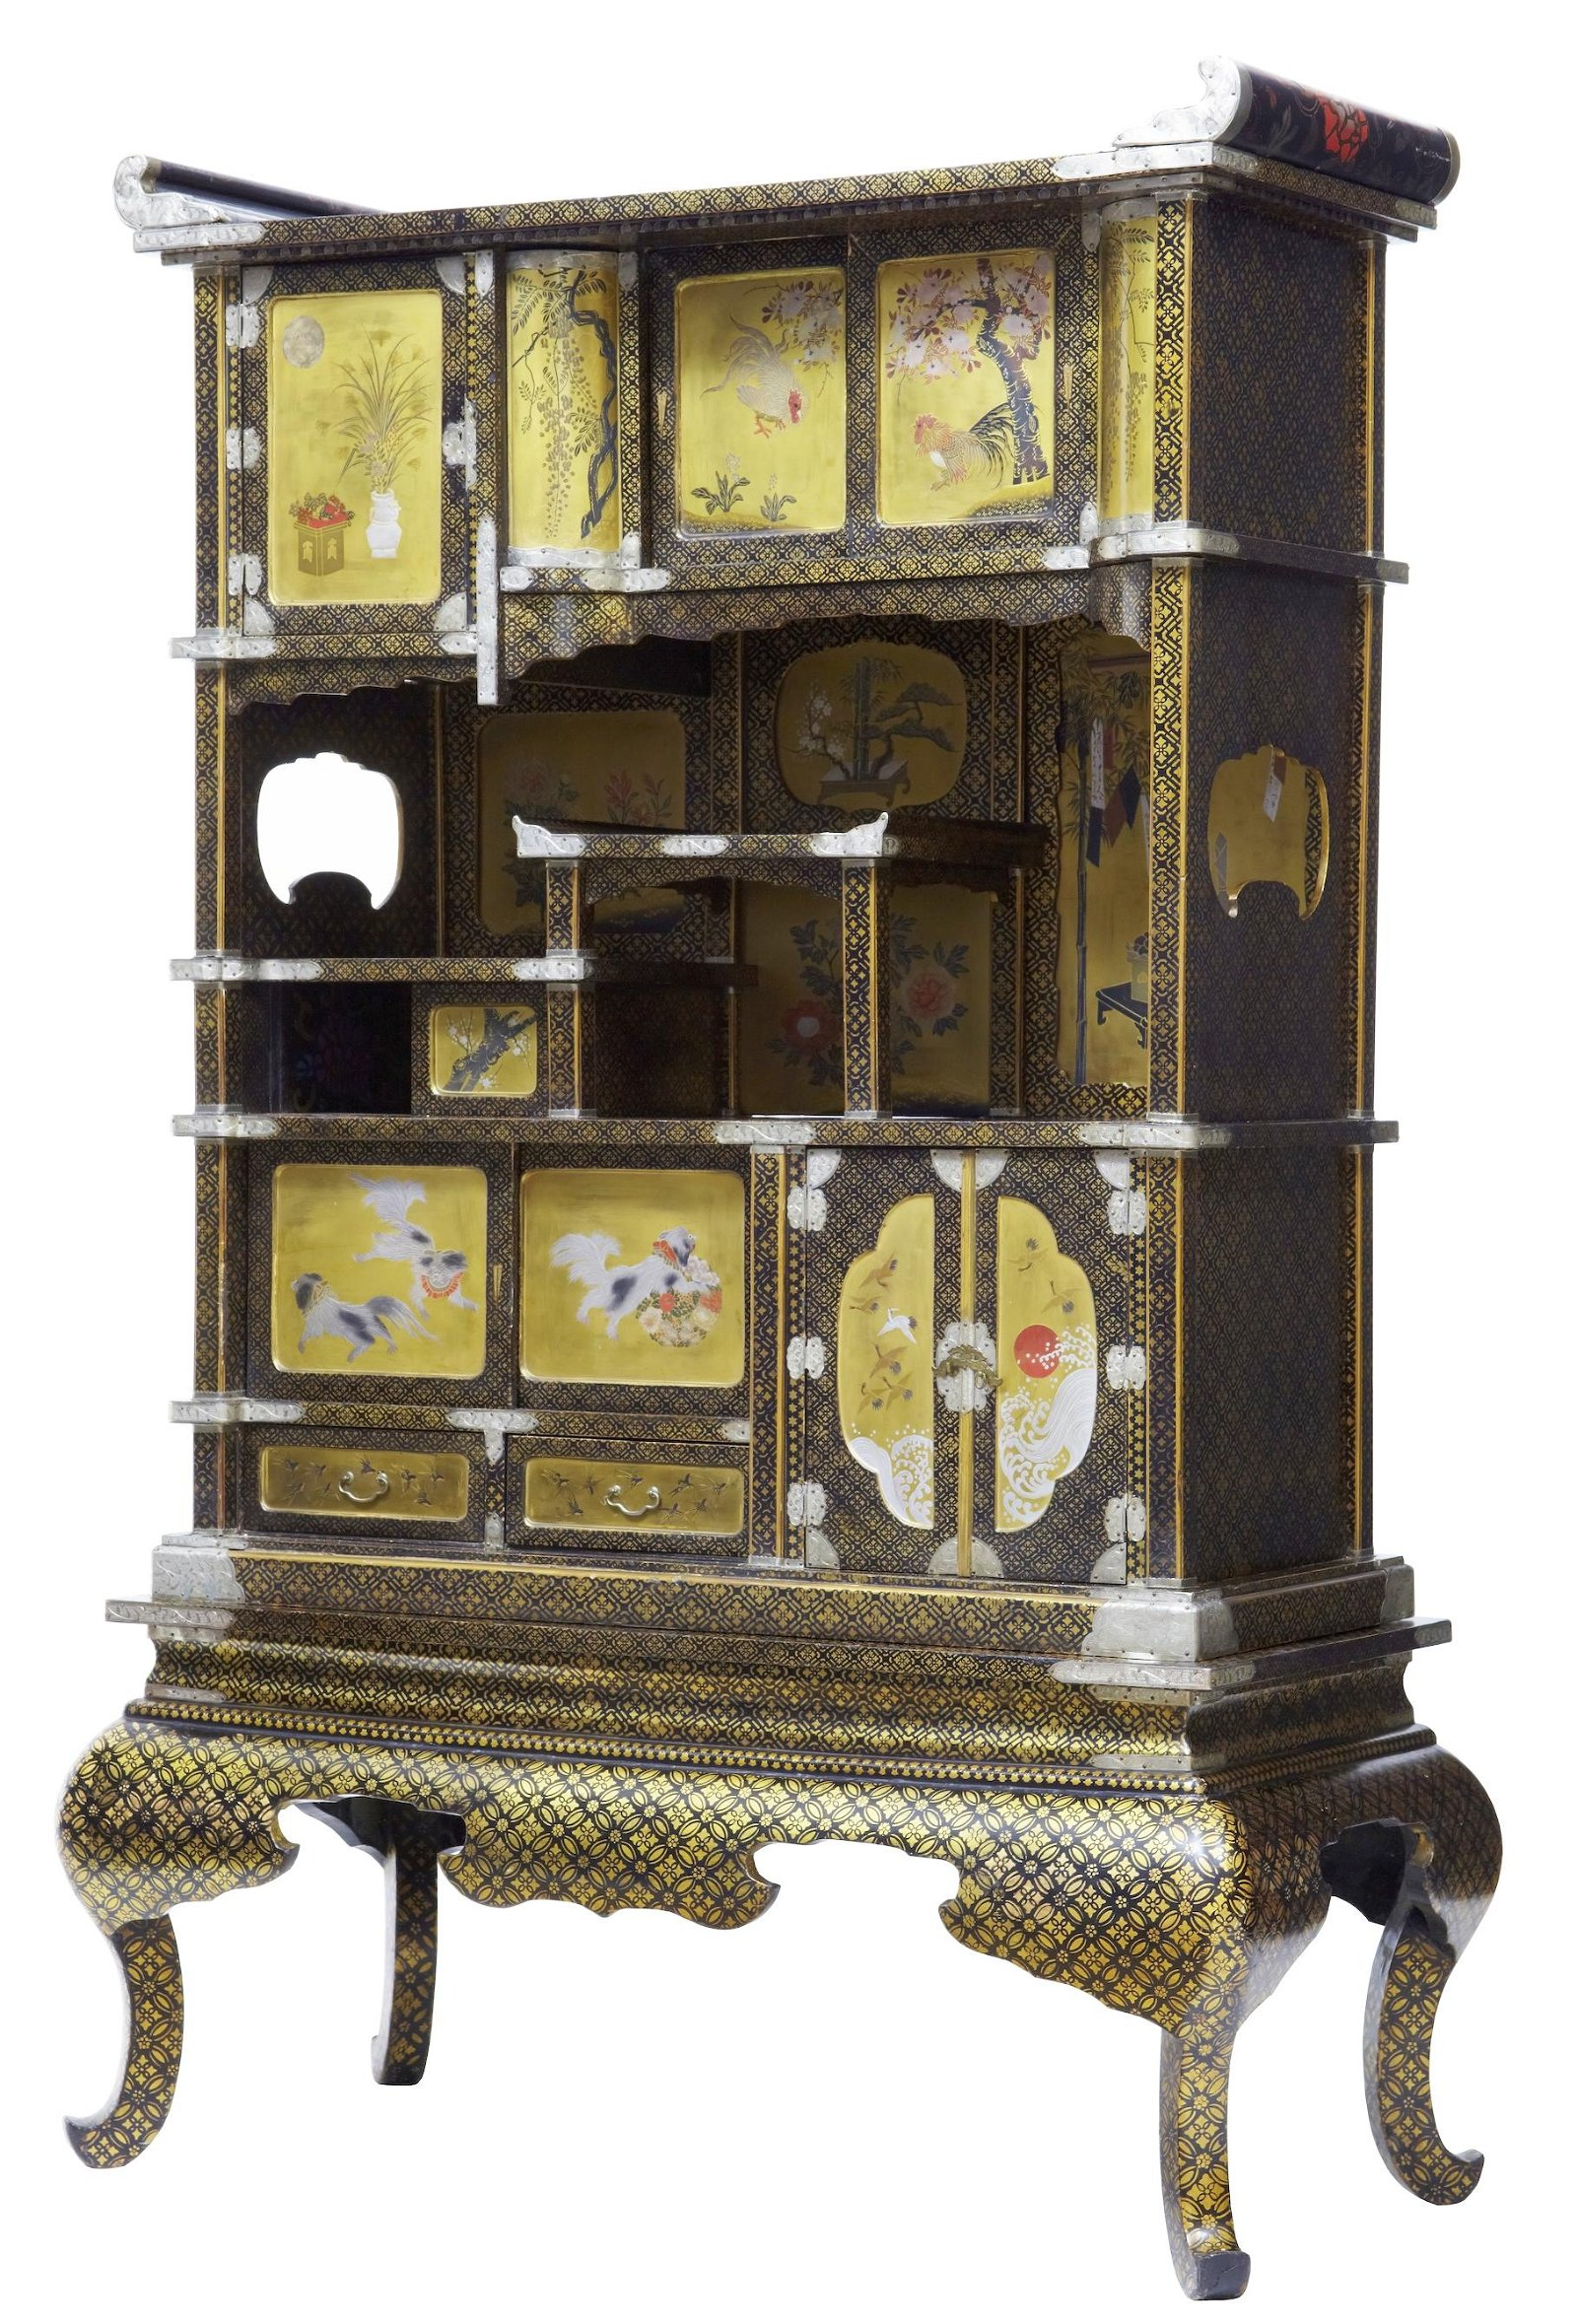 19TH CENTURY JAPANESE BLACK AND GOLD LAQUERED DISPLAY